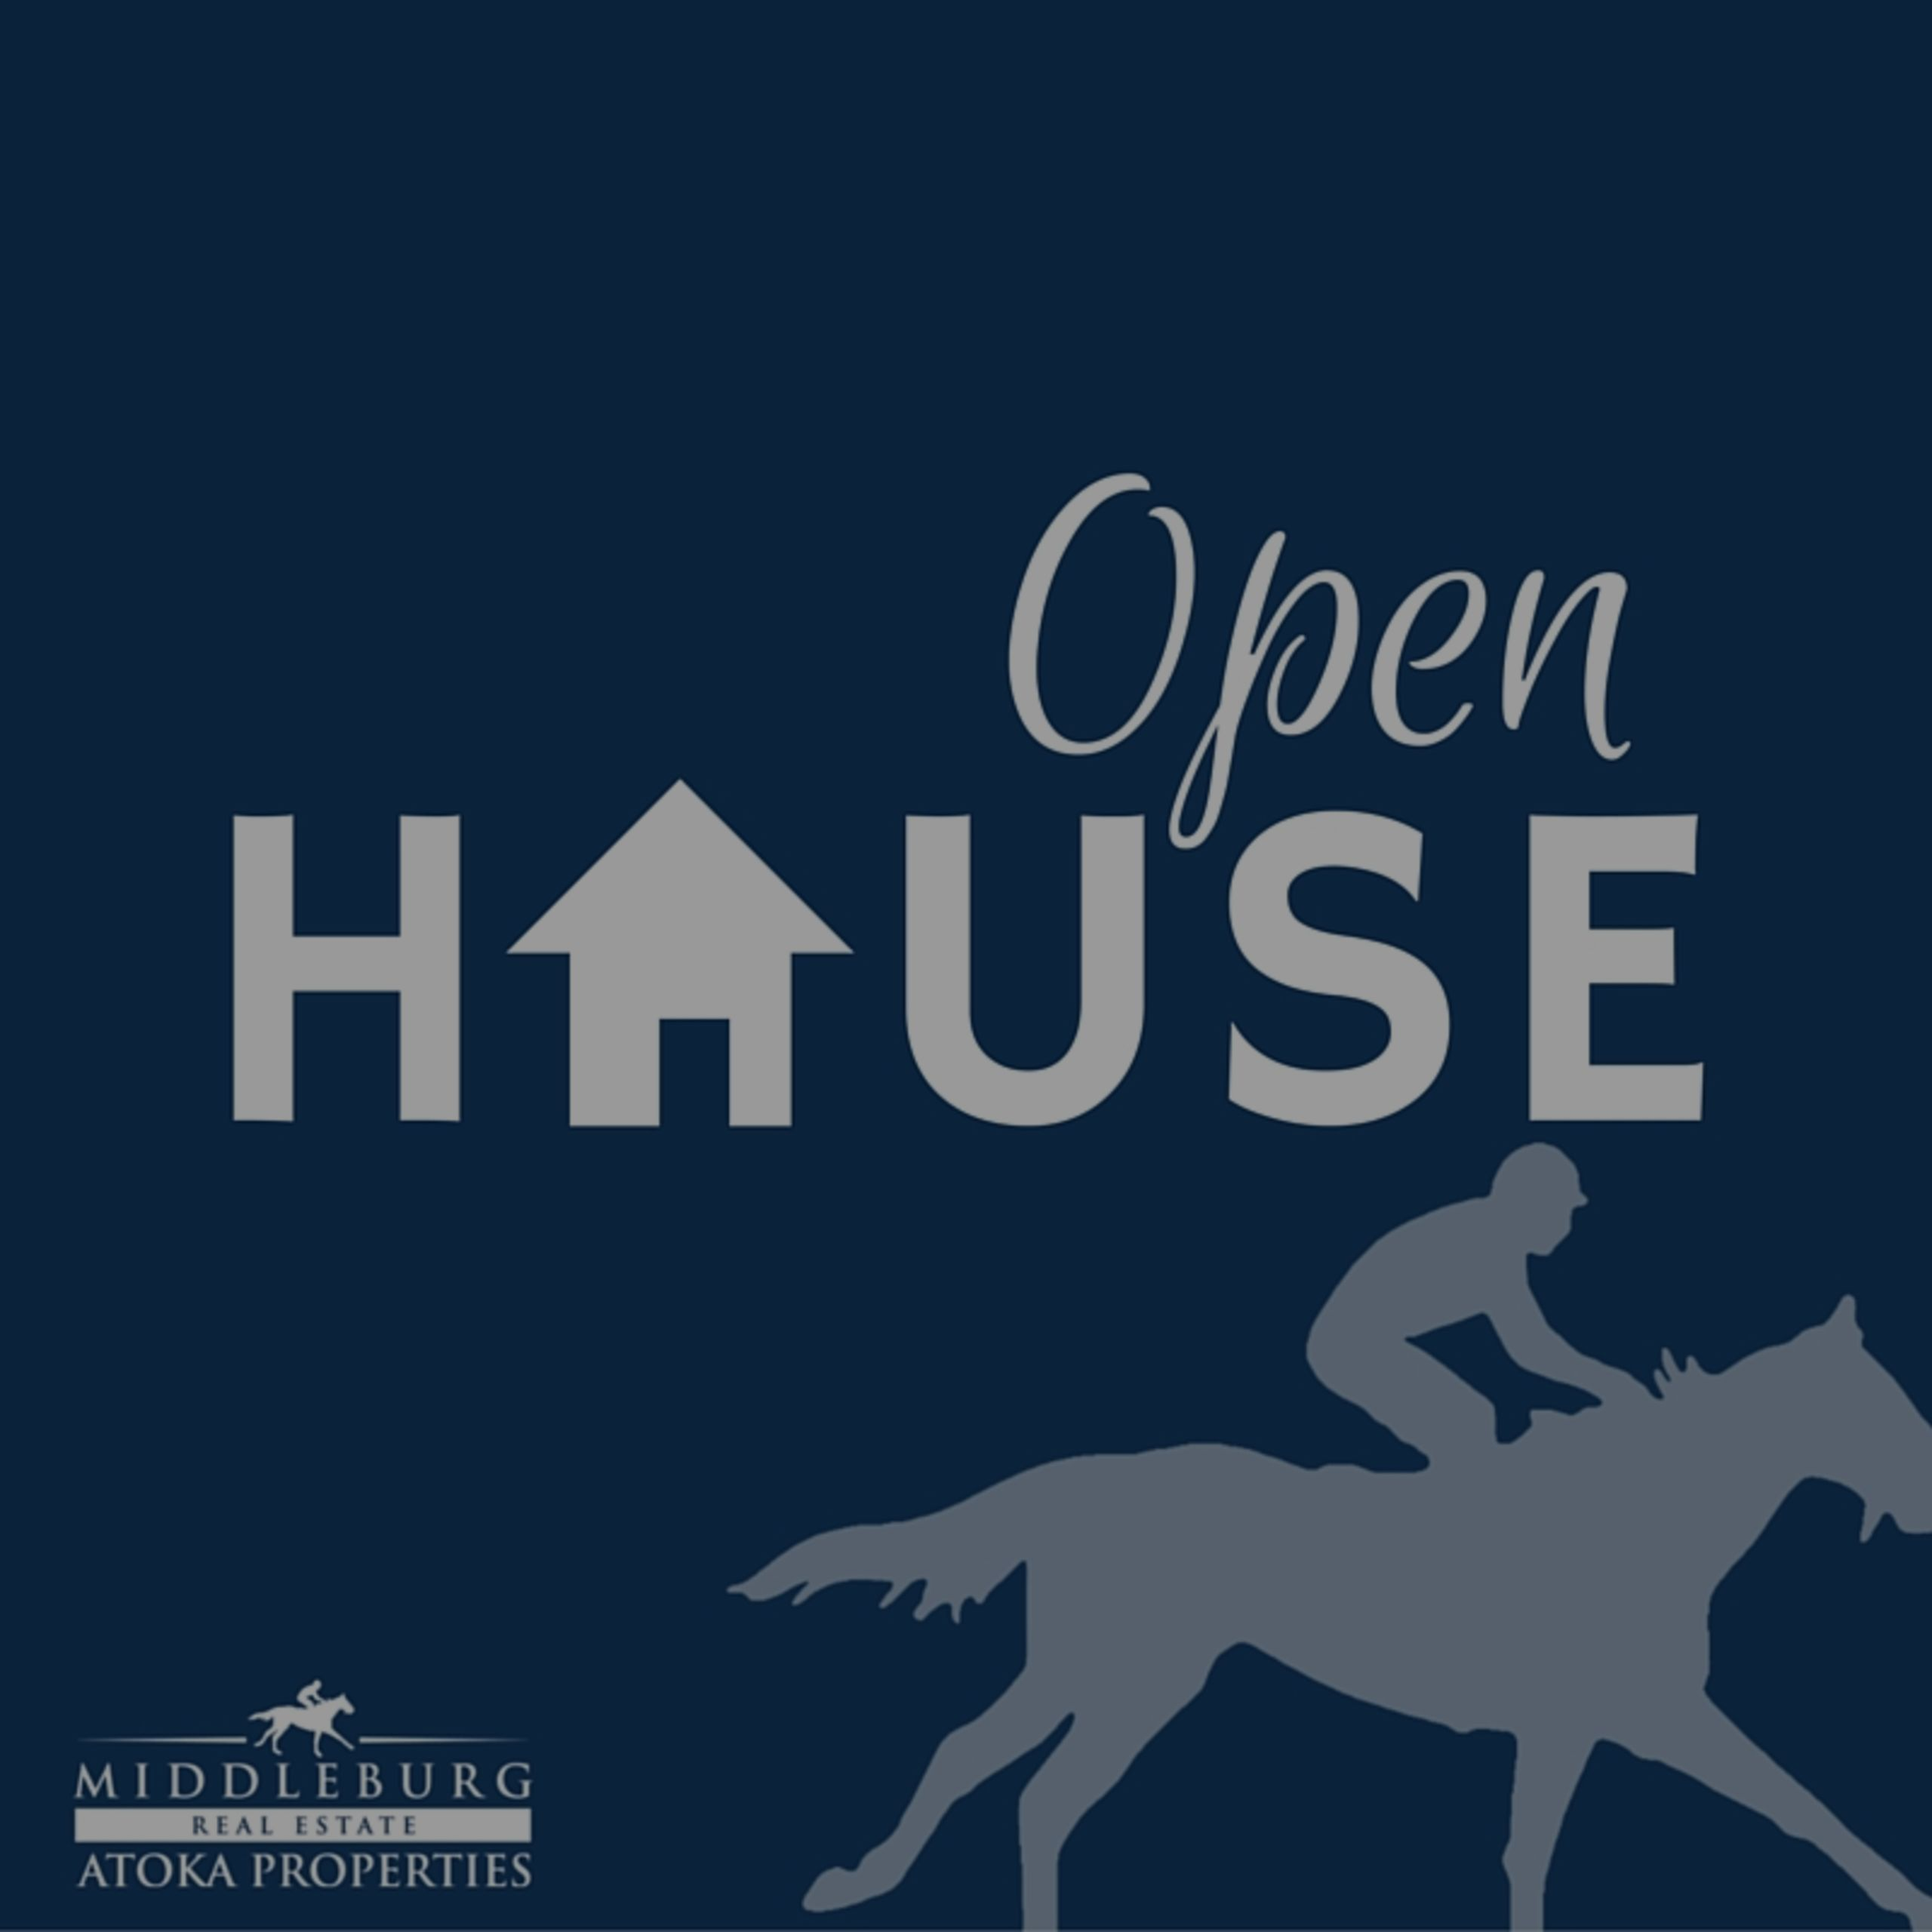 3 Open Houses in Ashburn, Purcellville, Round Hill | 11/6, 1-4PM